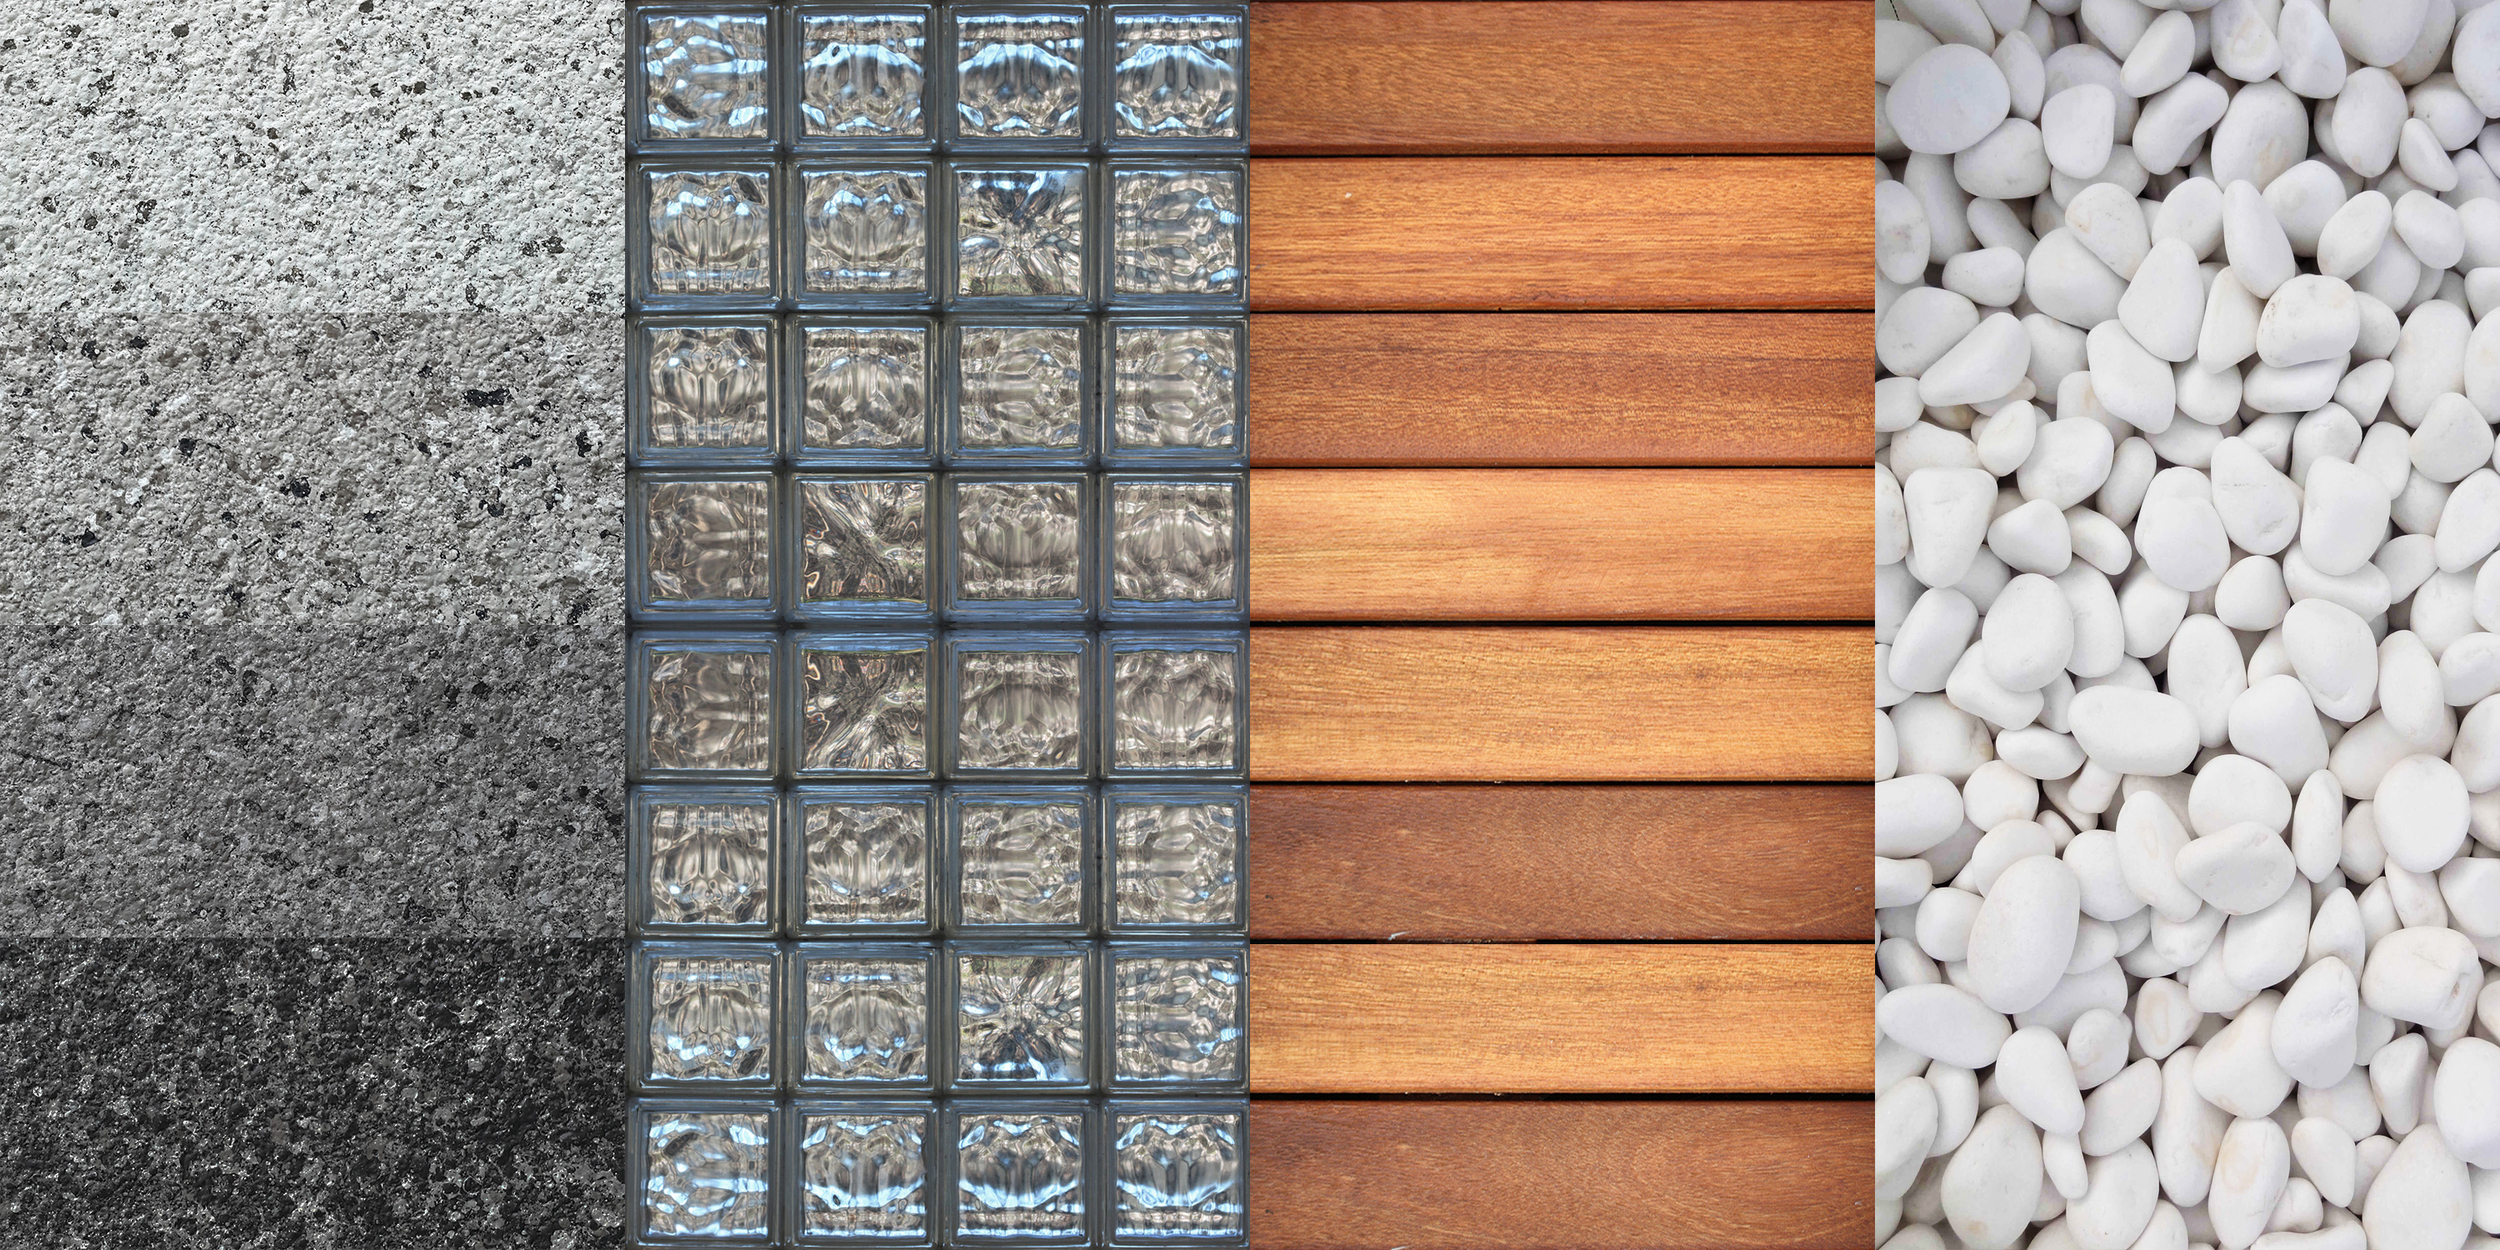 MATERIAL PALETTE (from left to right)  1. Four shades of stone-look acrylic paint 2. Glass blocks 3. Kempas hardwood decking 4. White pebbles